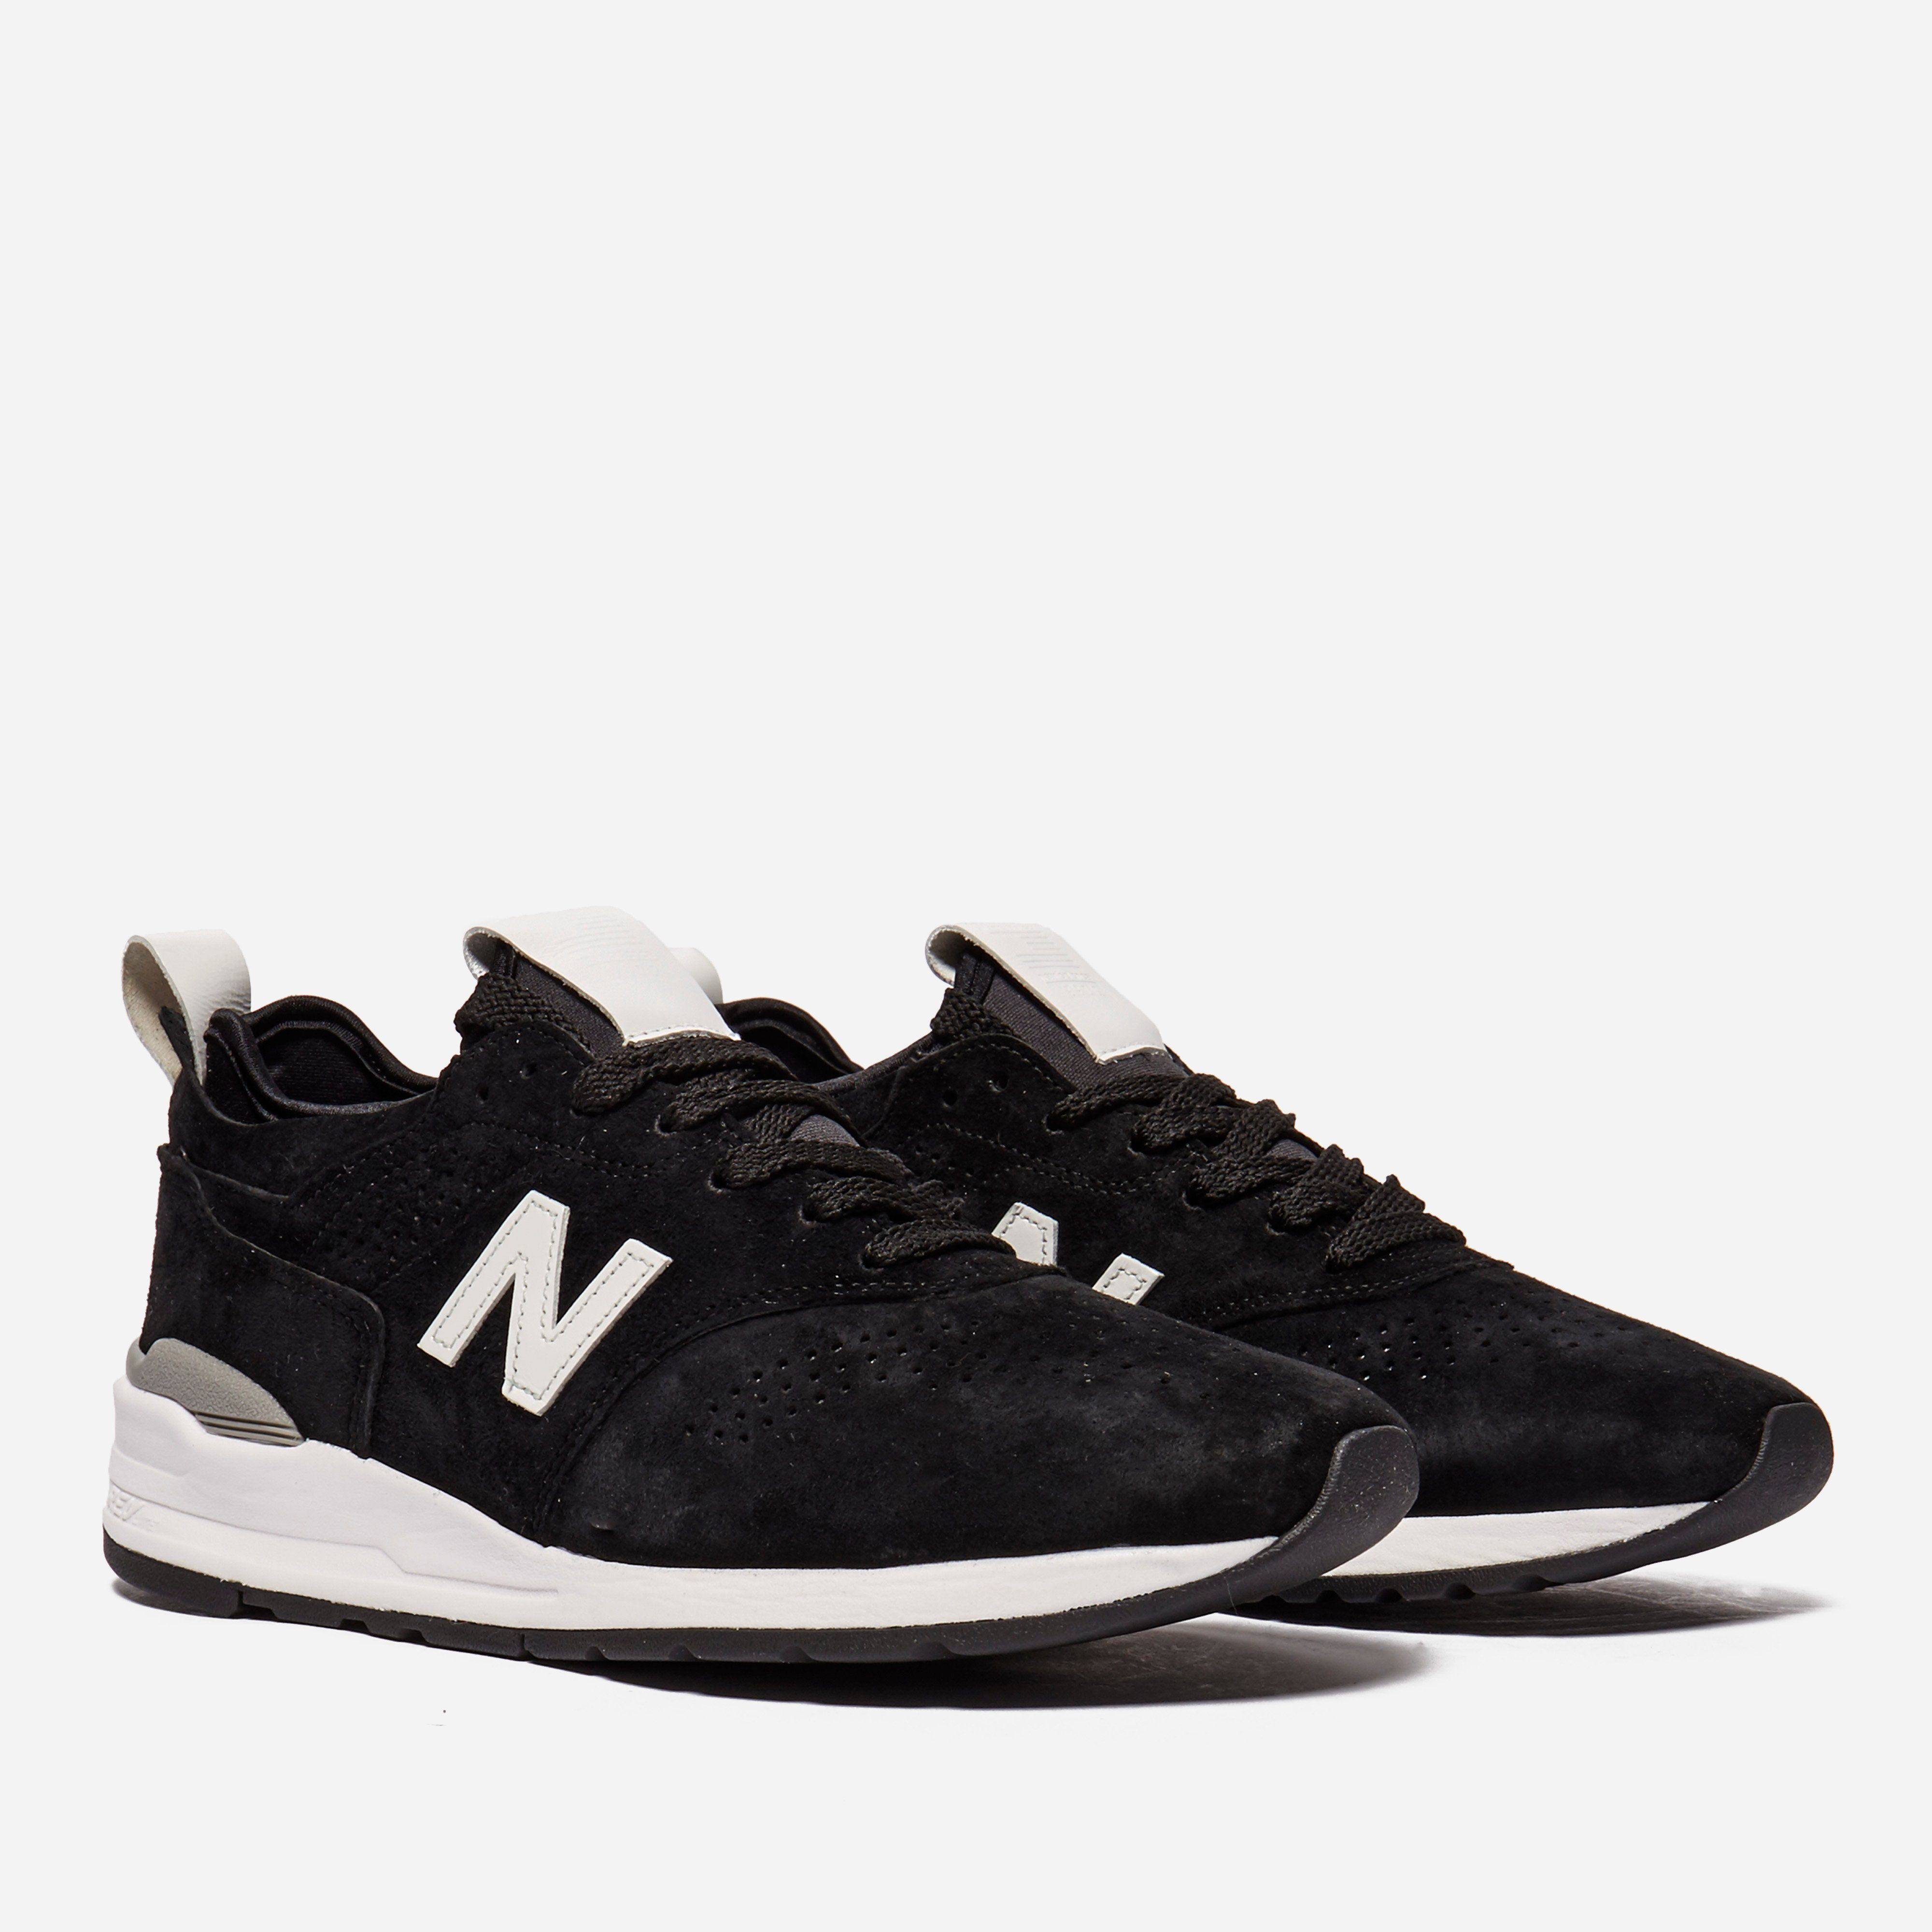 New Balance M 997 DBW2 Made in USA